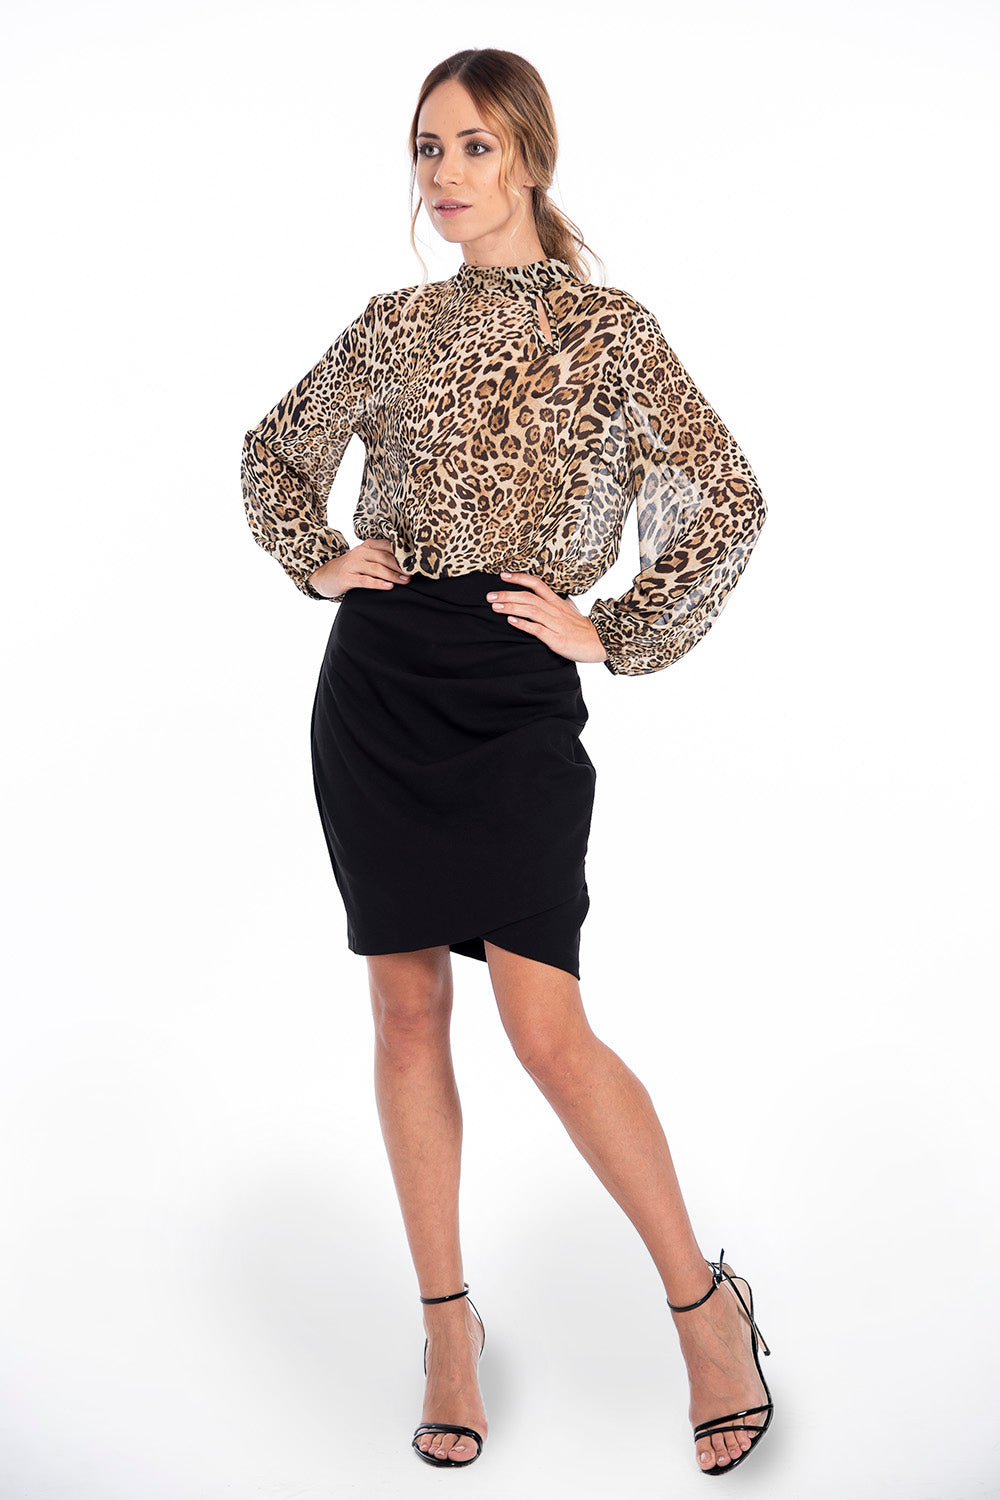 Rinascimento midi dress with animal print and black ruffle skirt